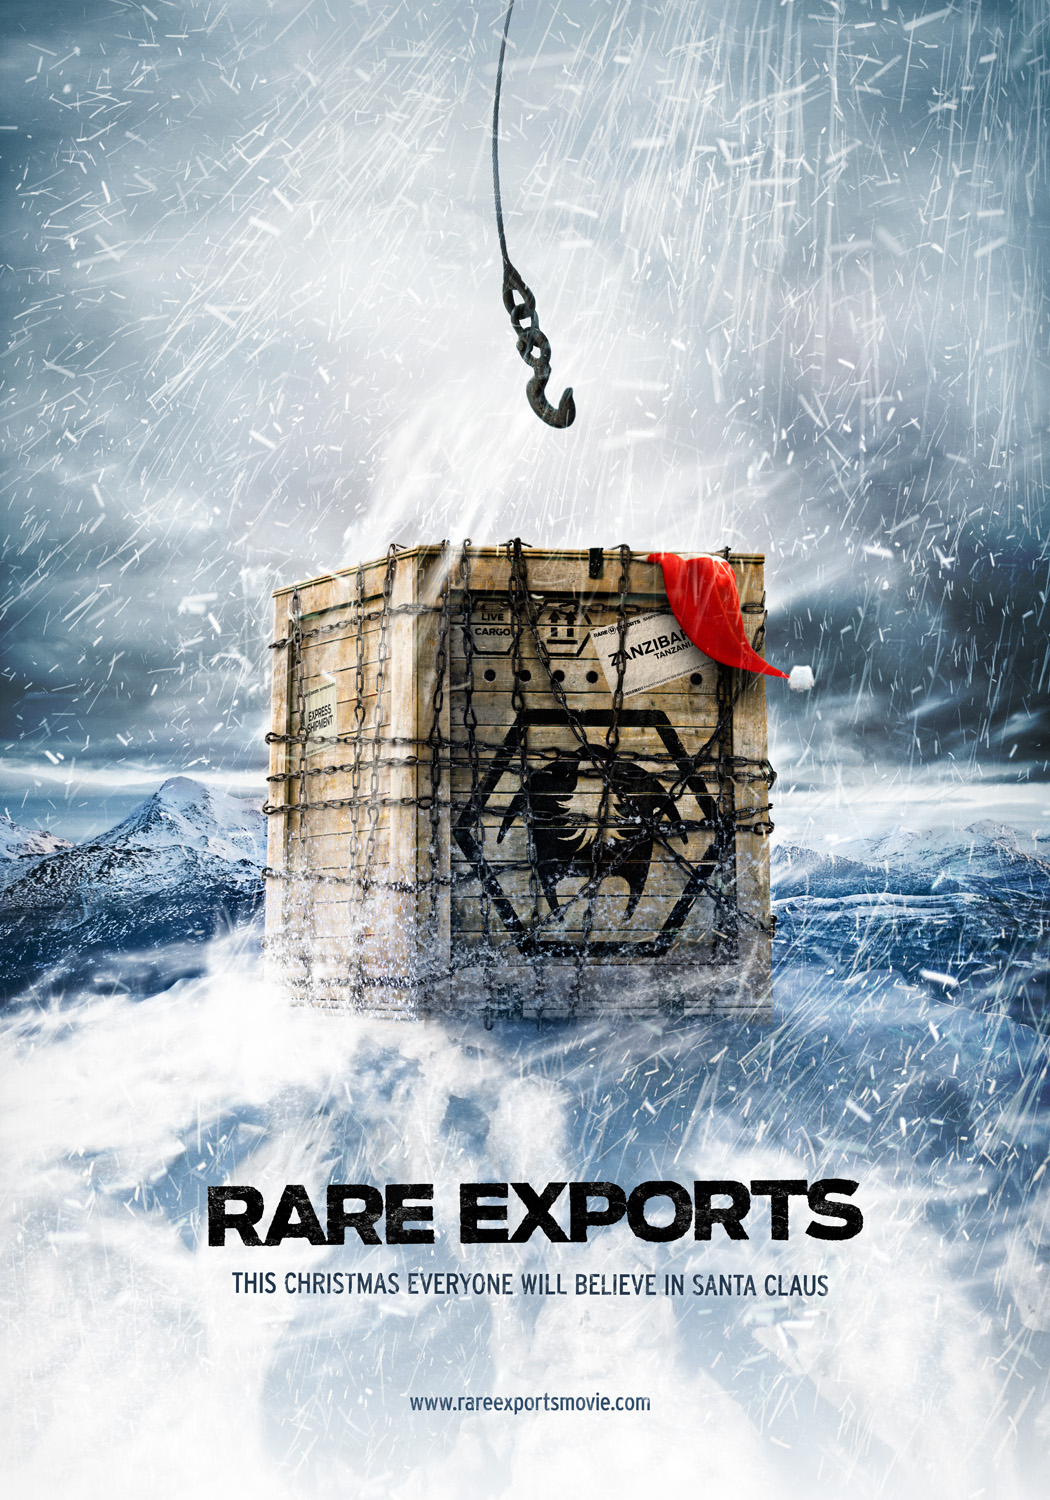 Rare Exports. This Christmas everyone will believe in Santa Claus.